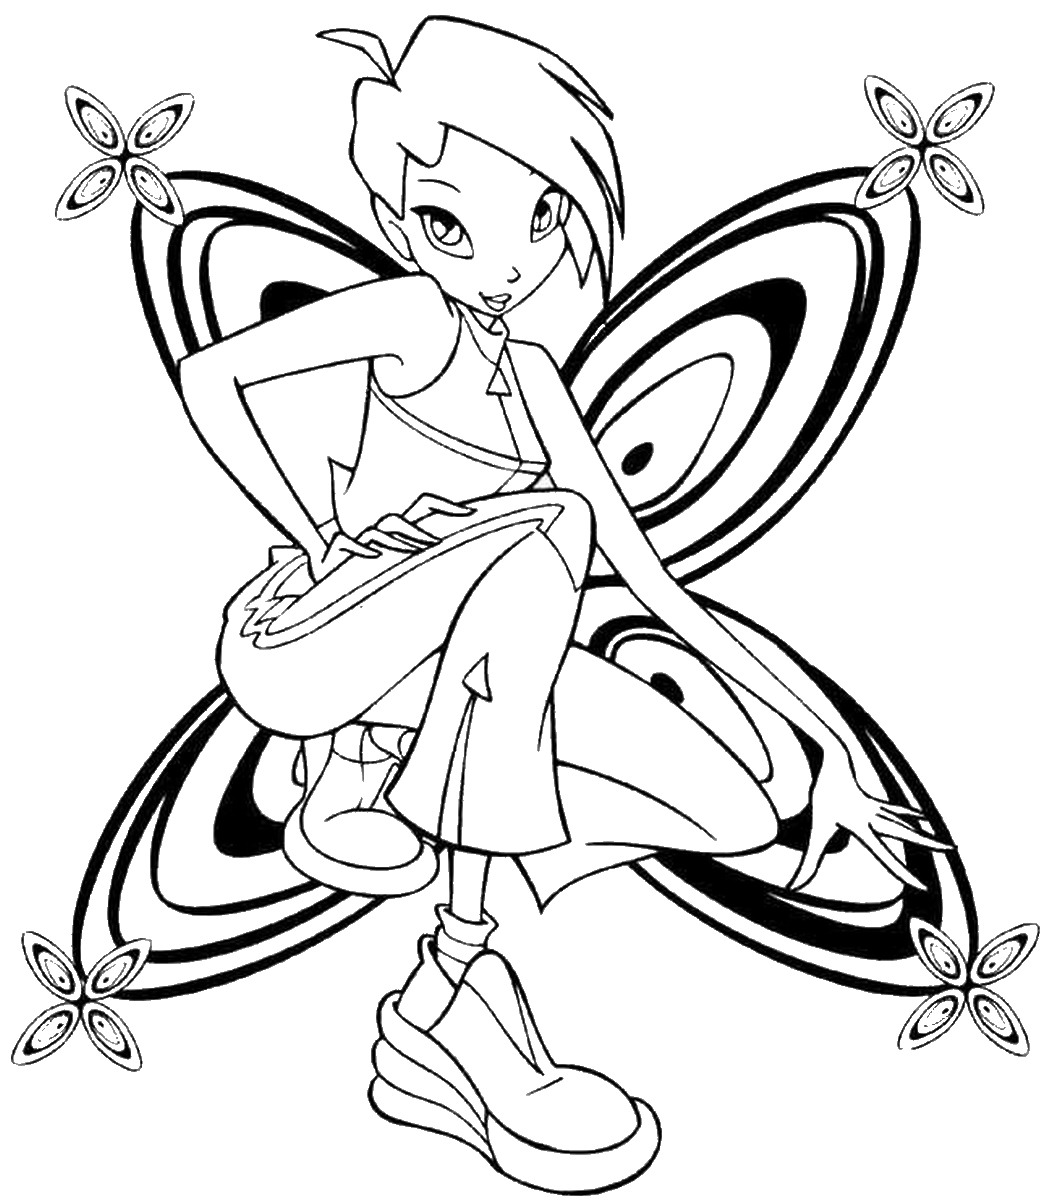 winx coloring pages online winx club roxy coloring page free printable coloring pages online coloring winx pages